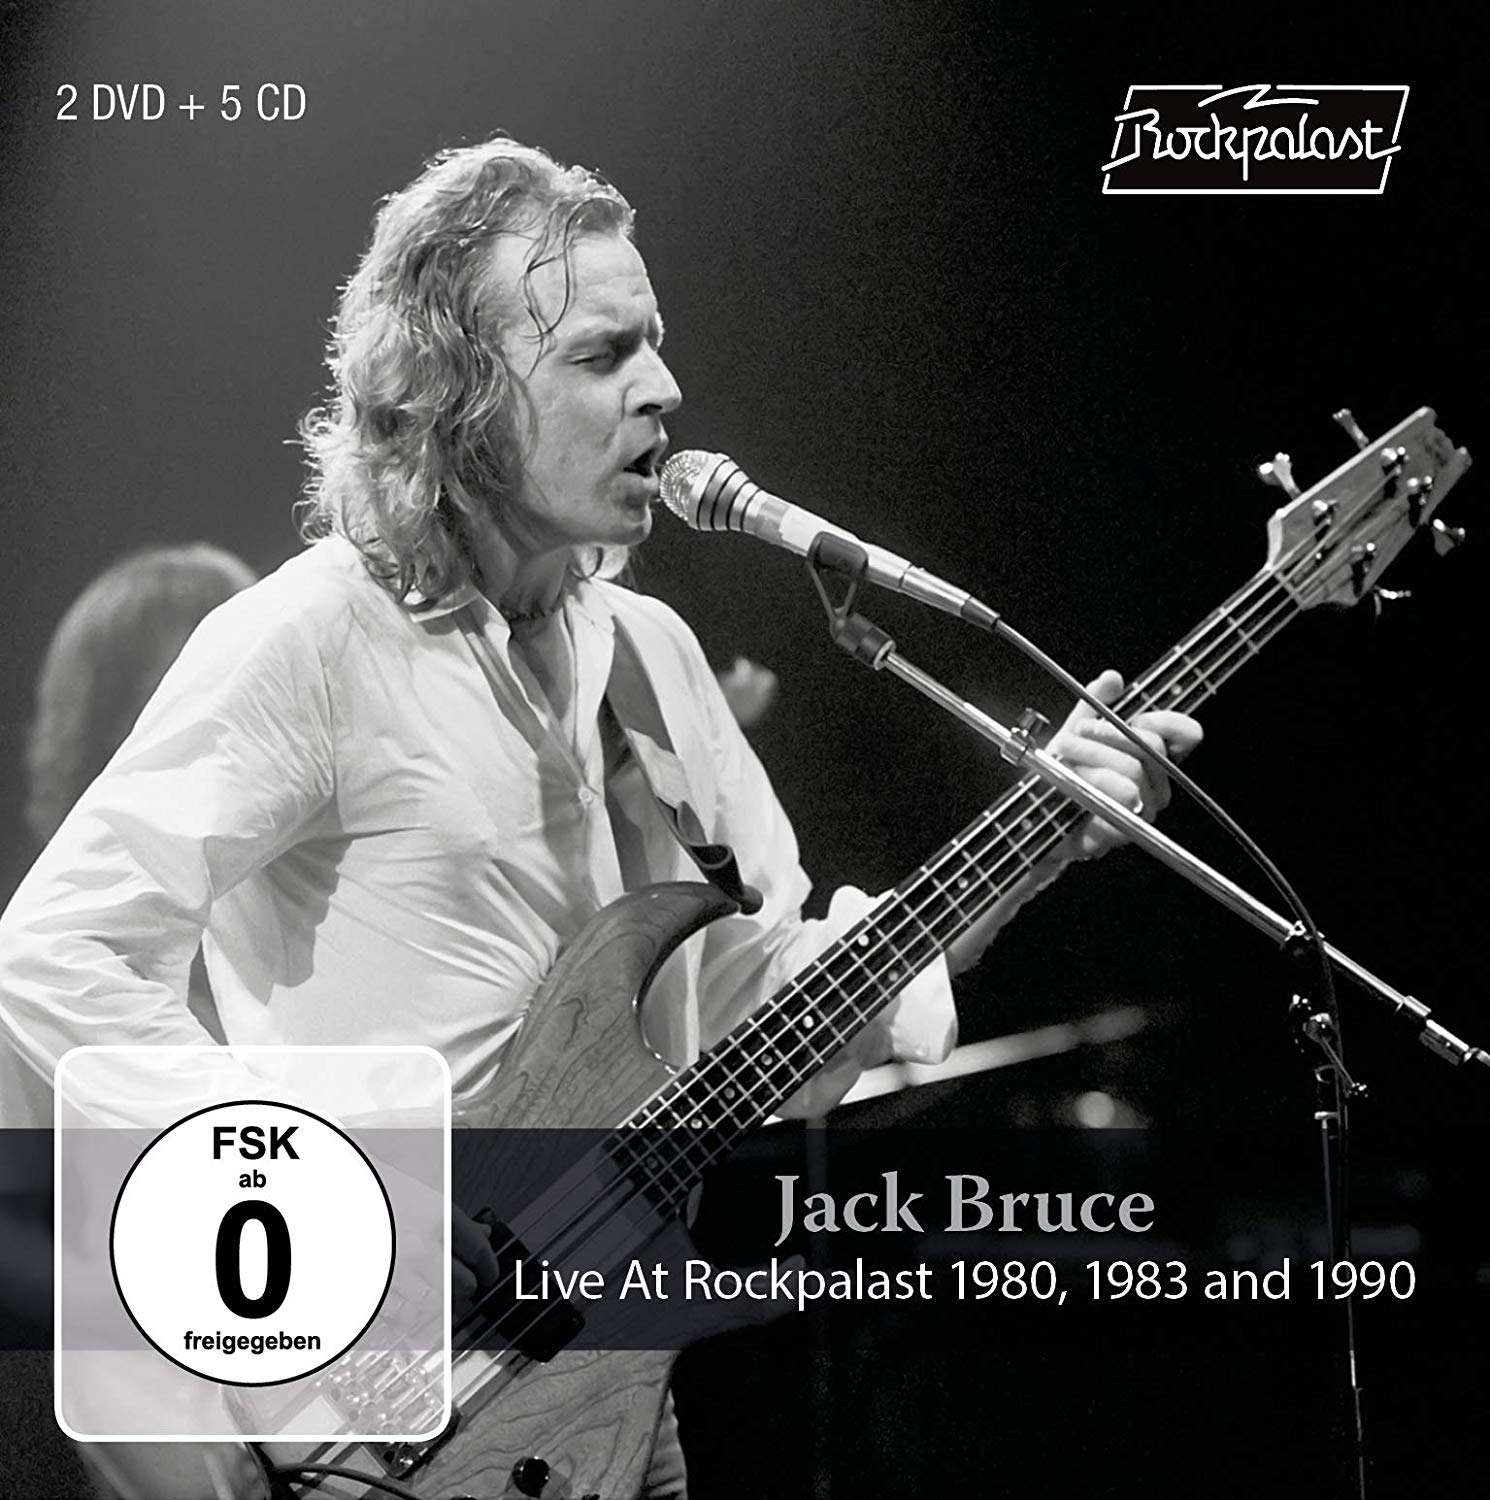 Live At Rockpalast 1980, 1983 And 1990 [5CD/2DVD]